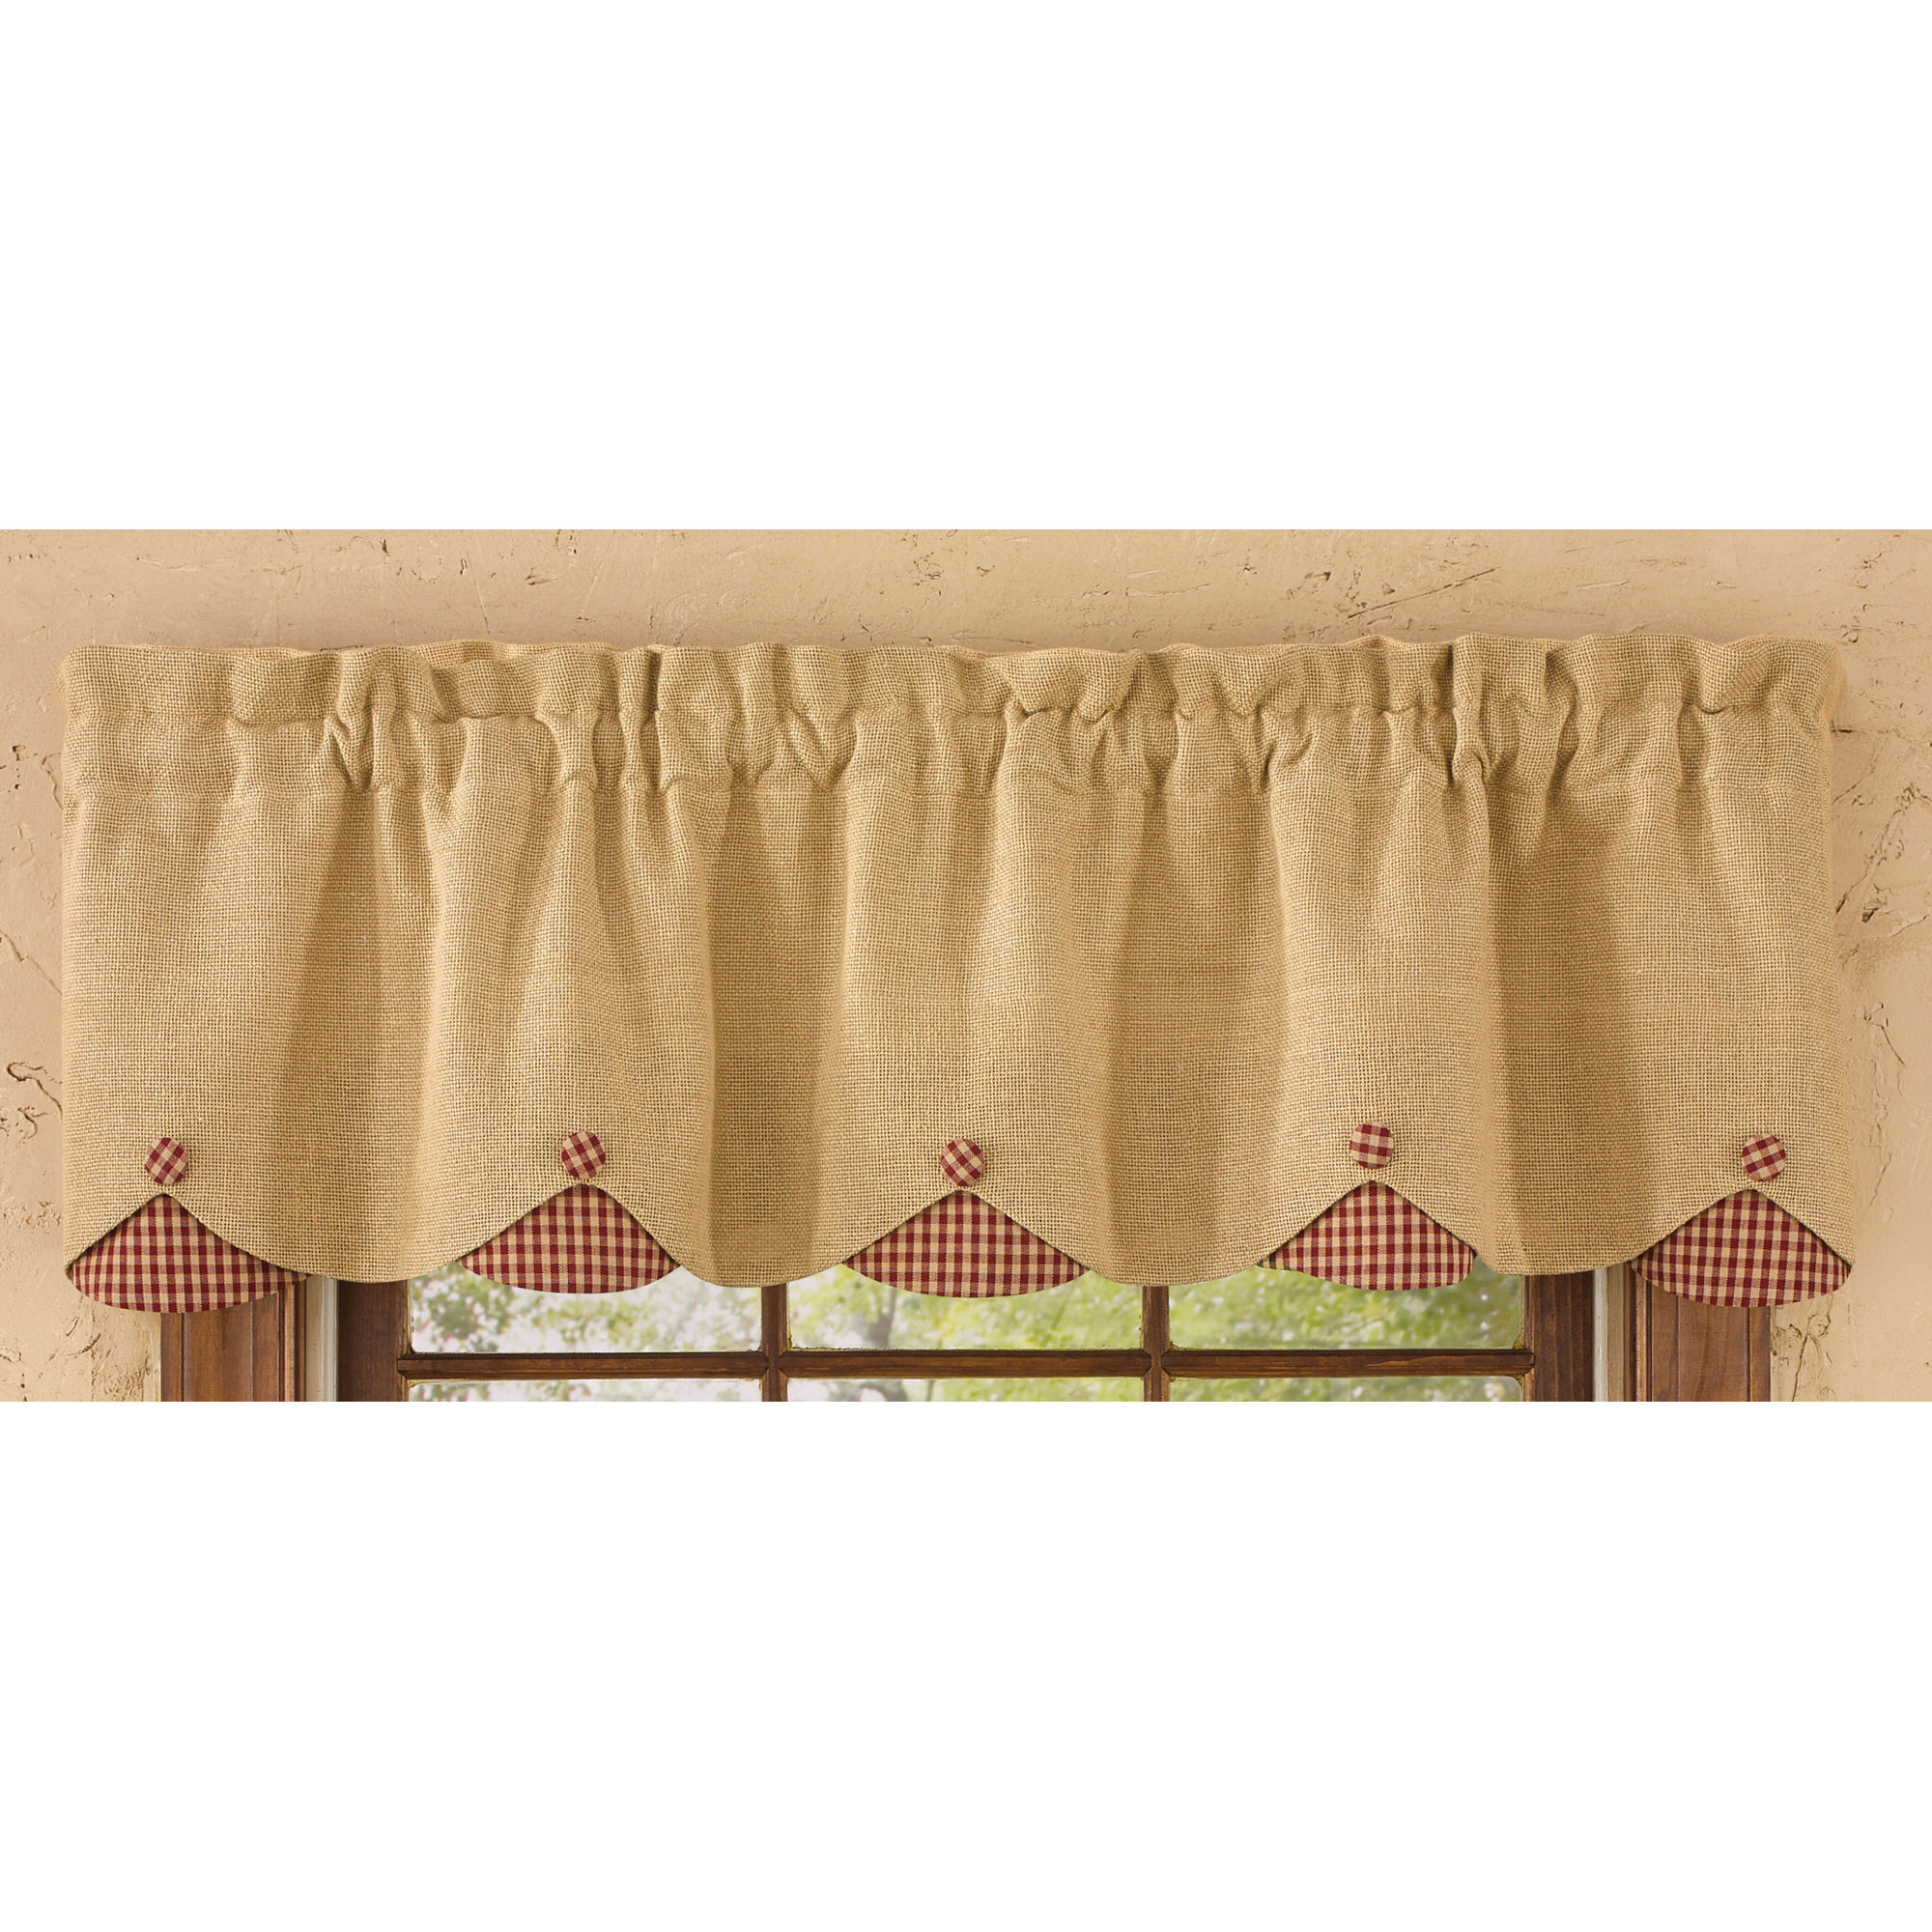 Burlap And Check Scalloped Curtain Valance By Park Designs